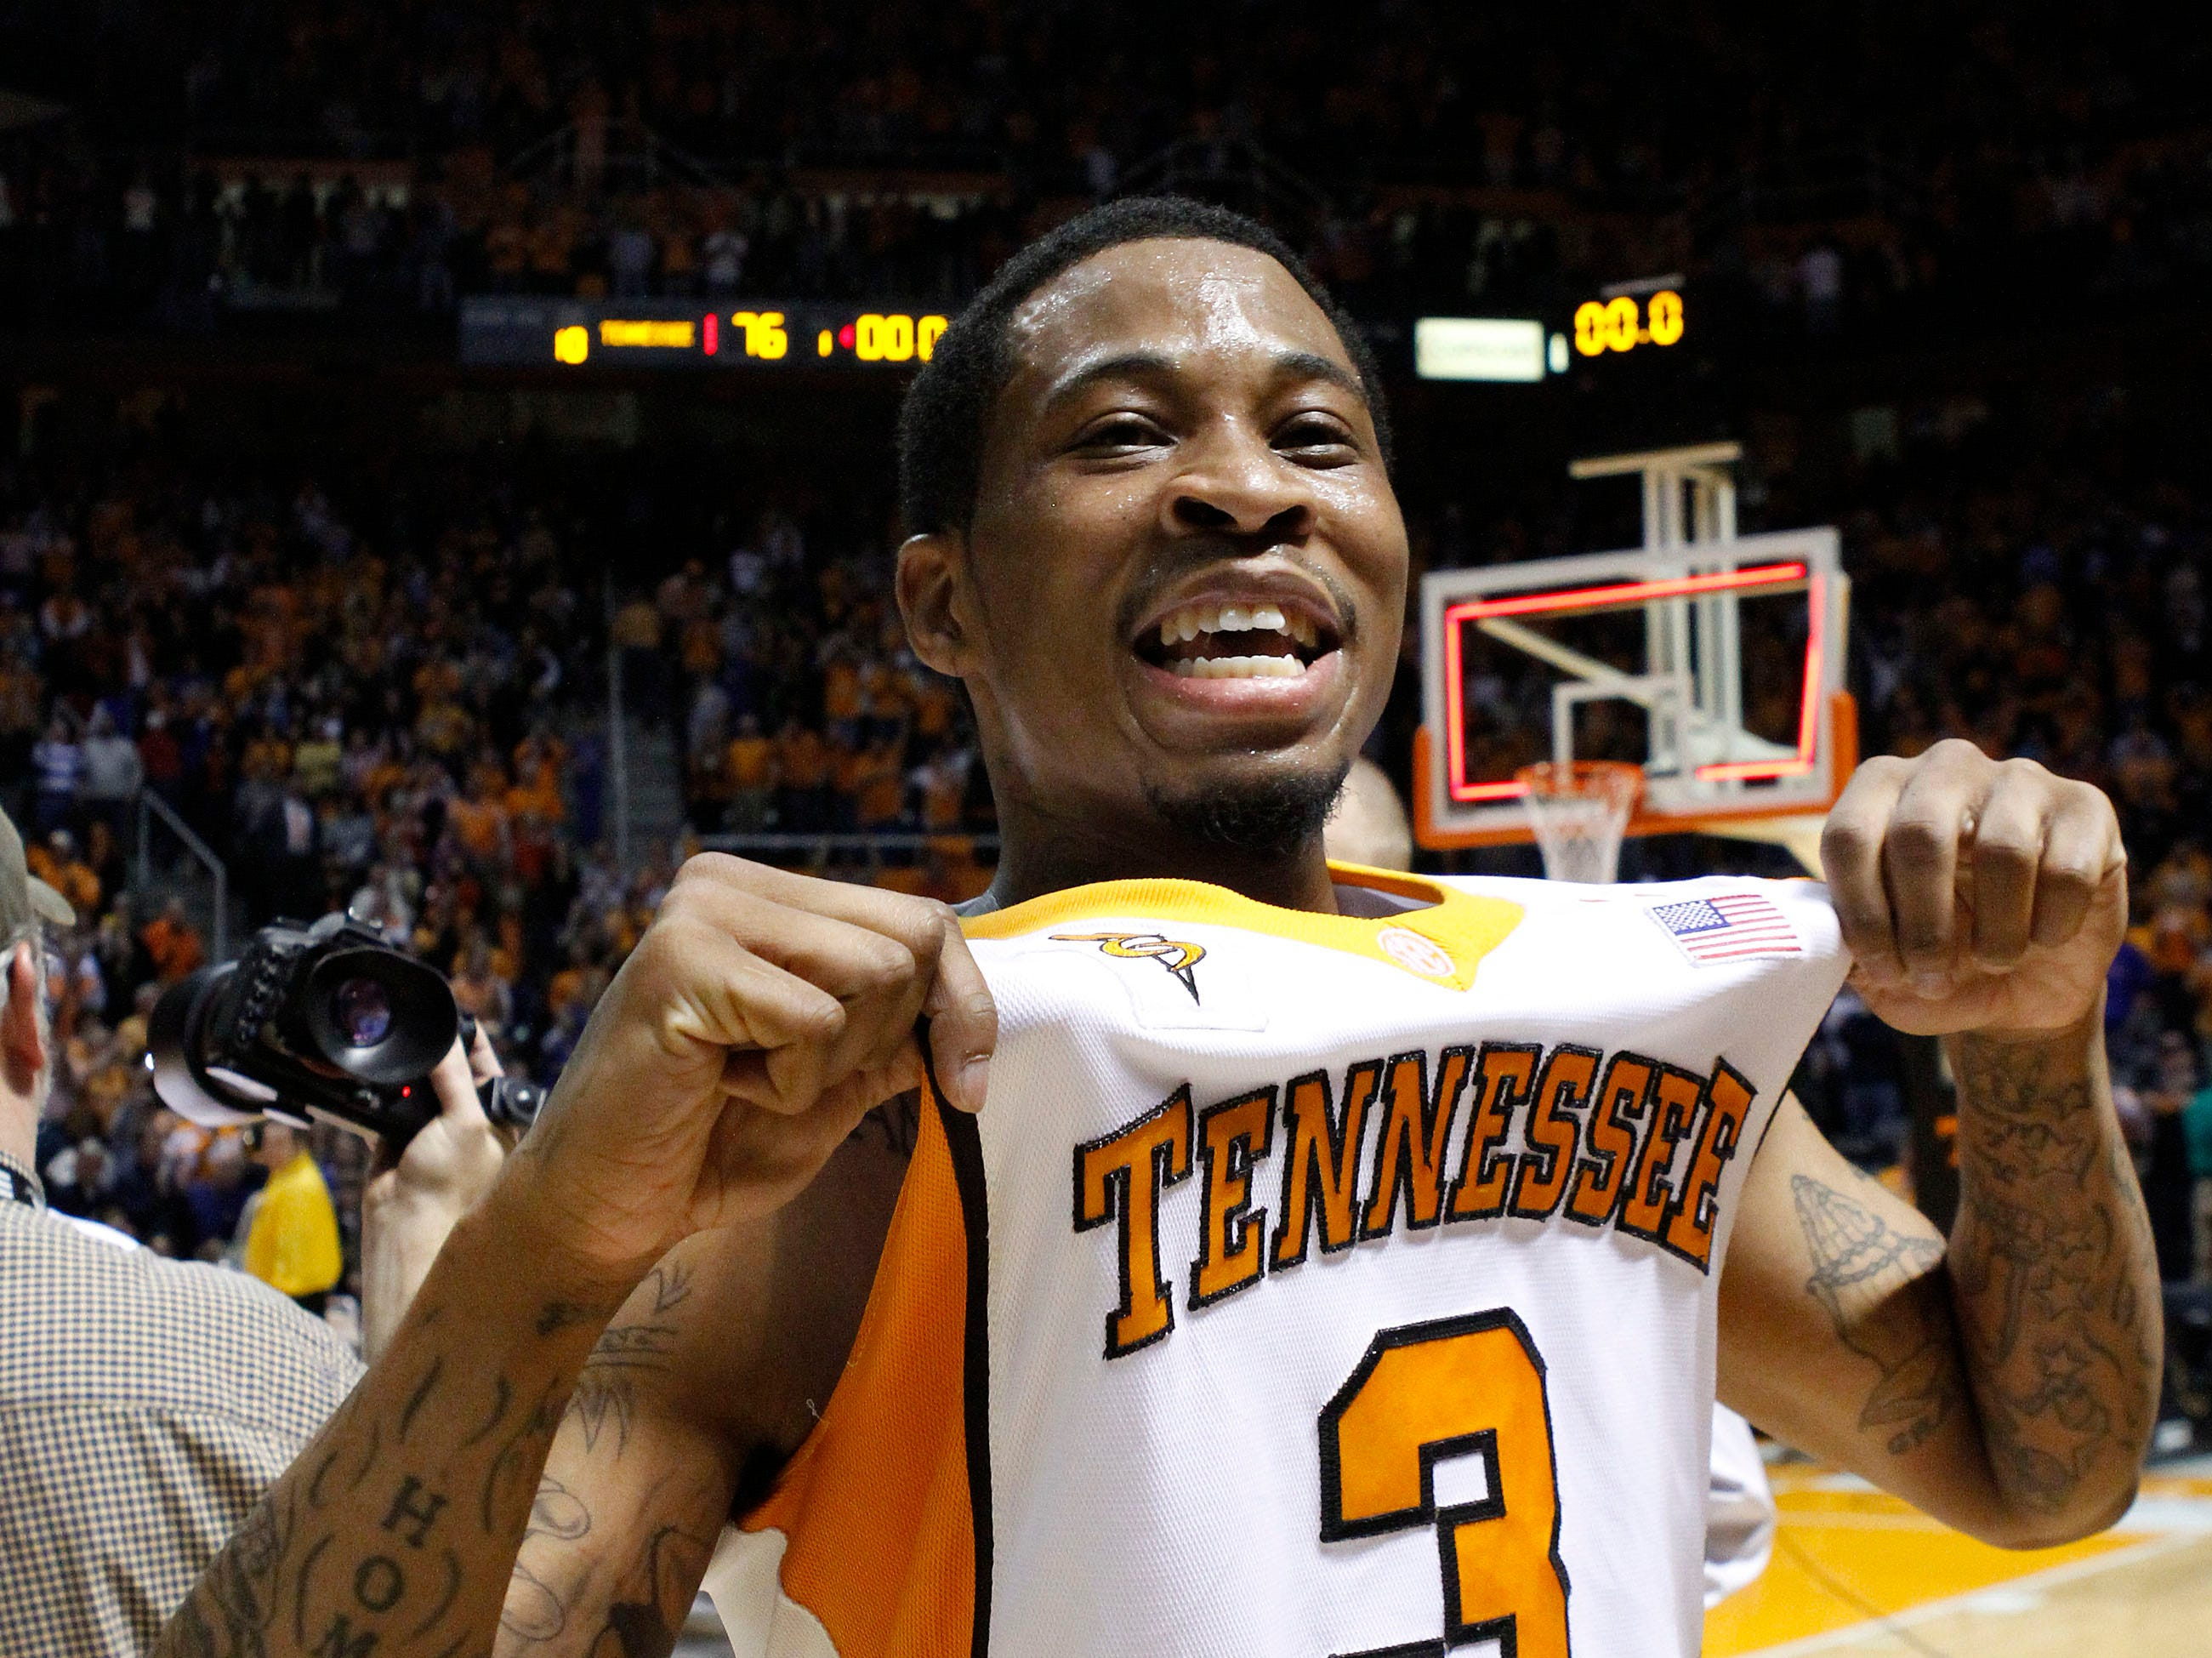 Tennessee's Bobby Maze (3) celebrates the team's win over No. 1-ranked Kansas during an NCAA college basketball game Sunday, Jan. 10, 2010, in Knoxville, Tenn. Tennessee won 76-68.